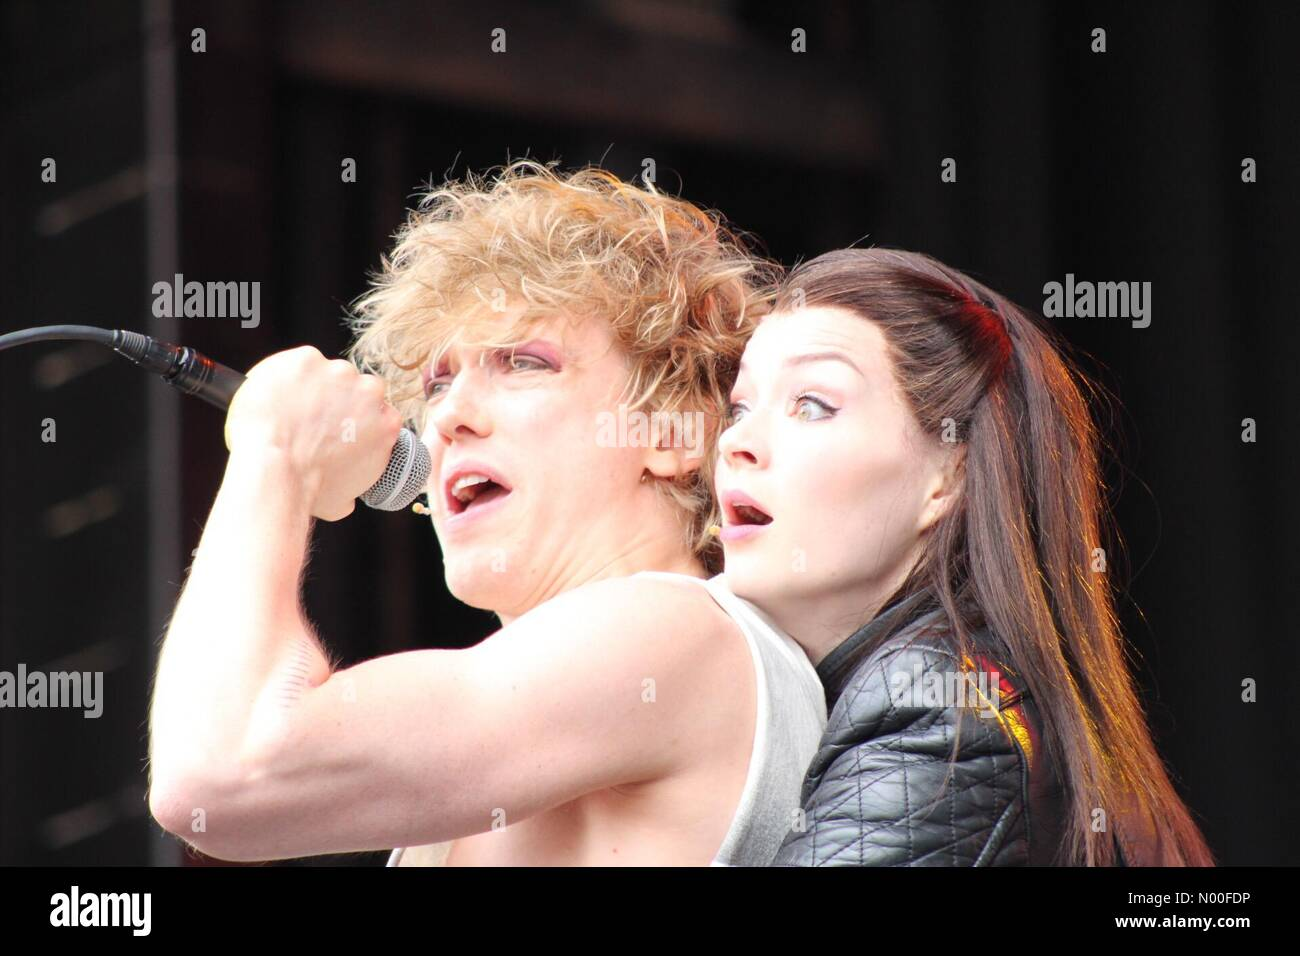 London, UK. 25th Jun, 2017. Bat Out of Hell at West End Live, Day 2. Trafalgar Square, London. 25/06 Credit: Ollie - Stock Image